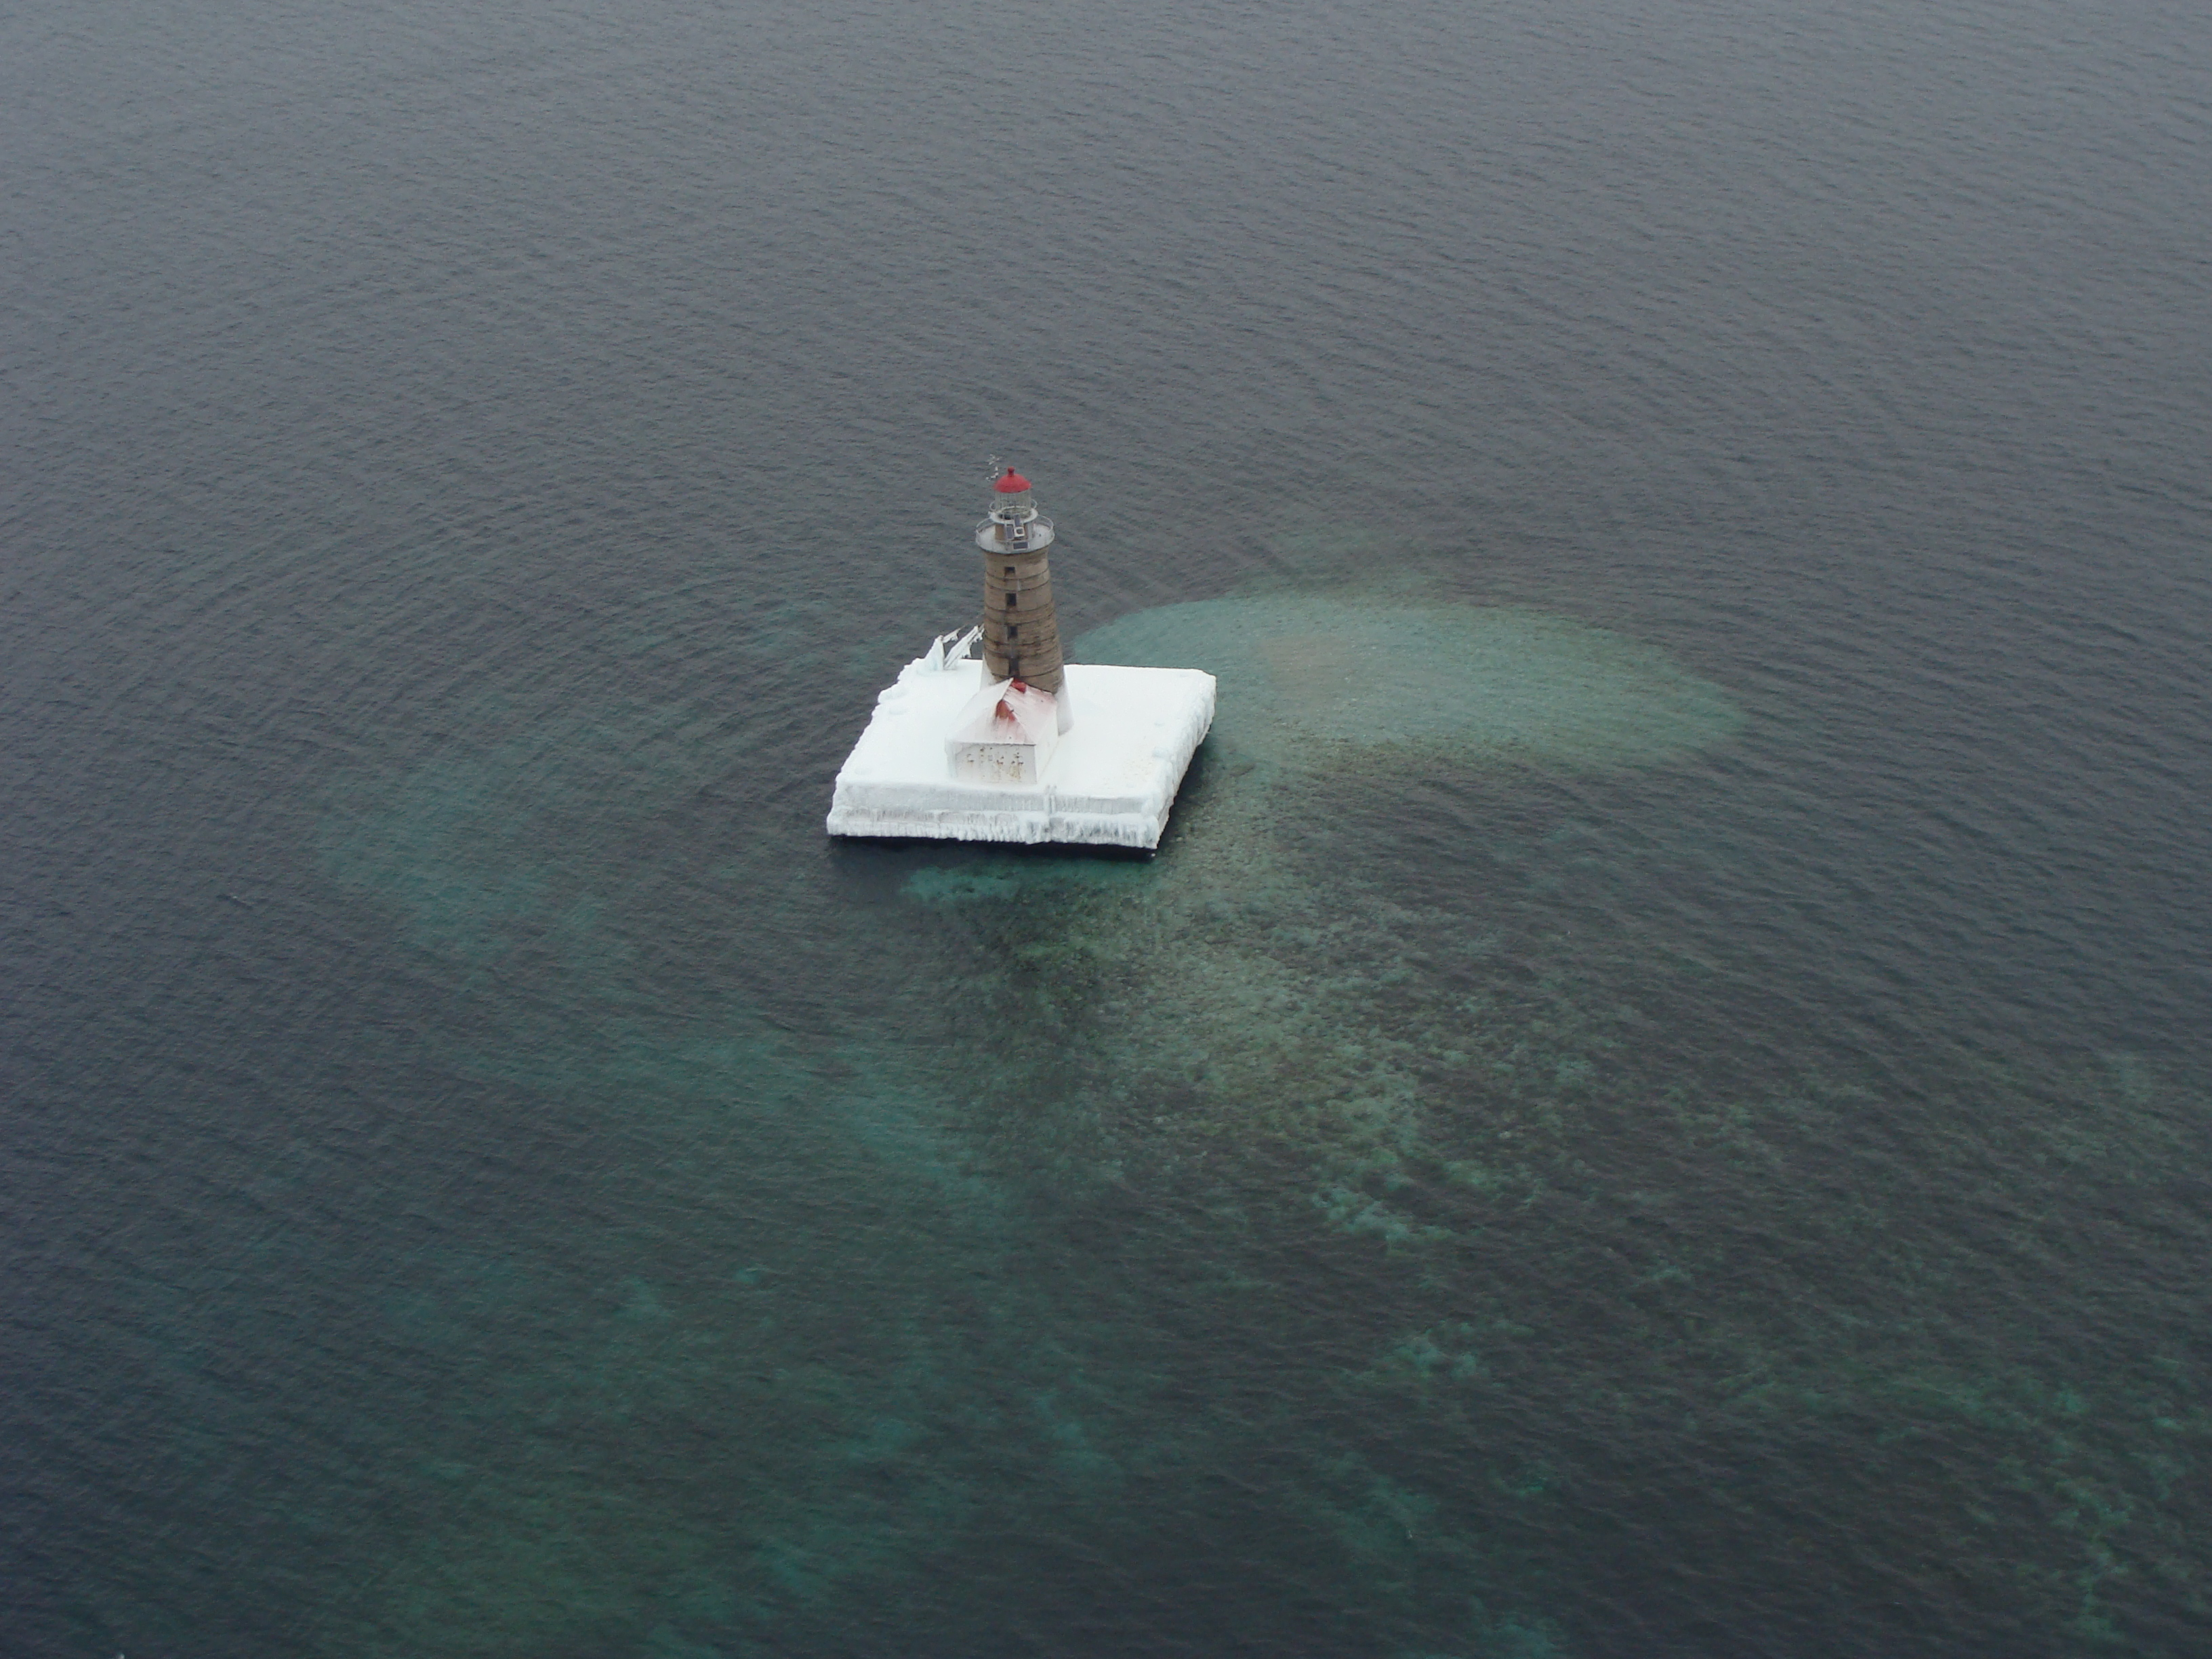 Spectacle Reef Lighthouse in northern Lake Huron surrounded by open water, January 2014. Credit: Dick Moehl.